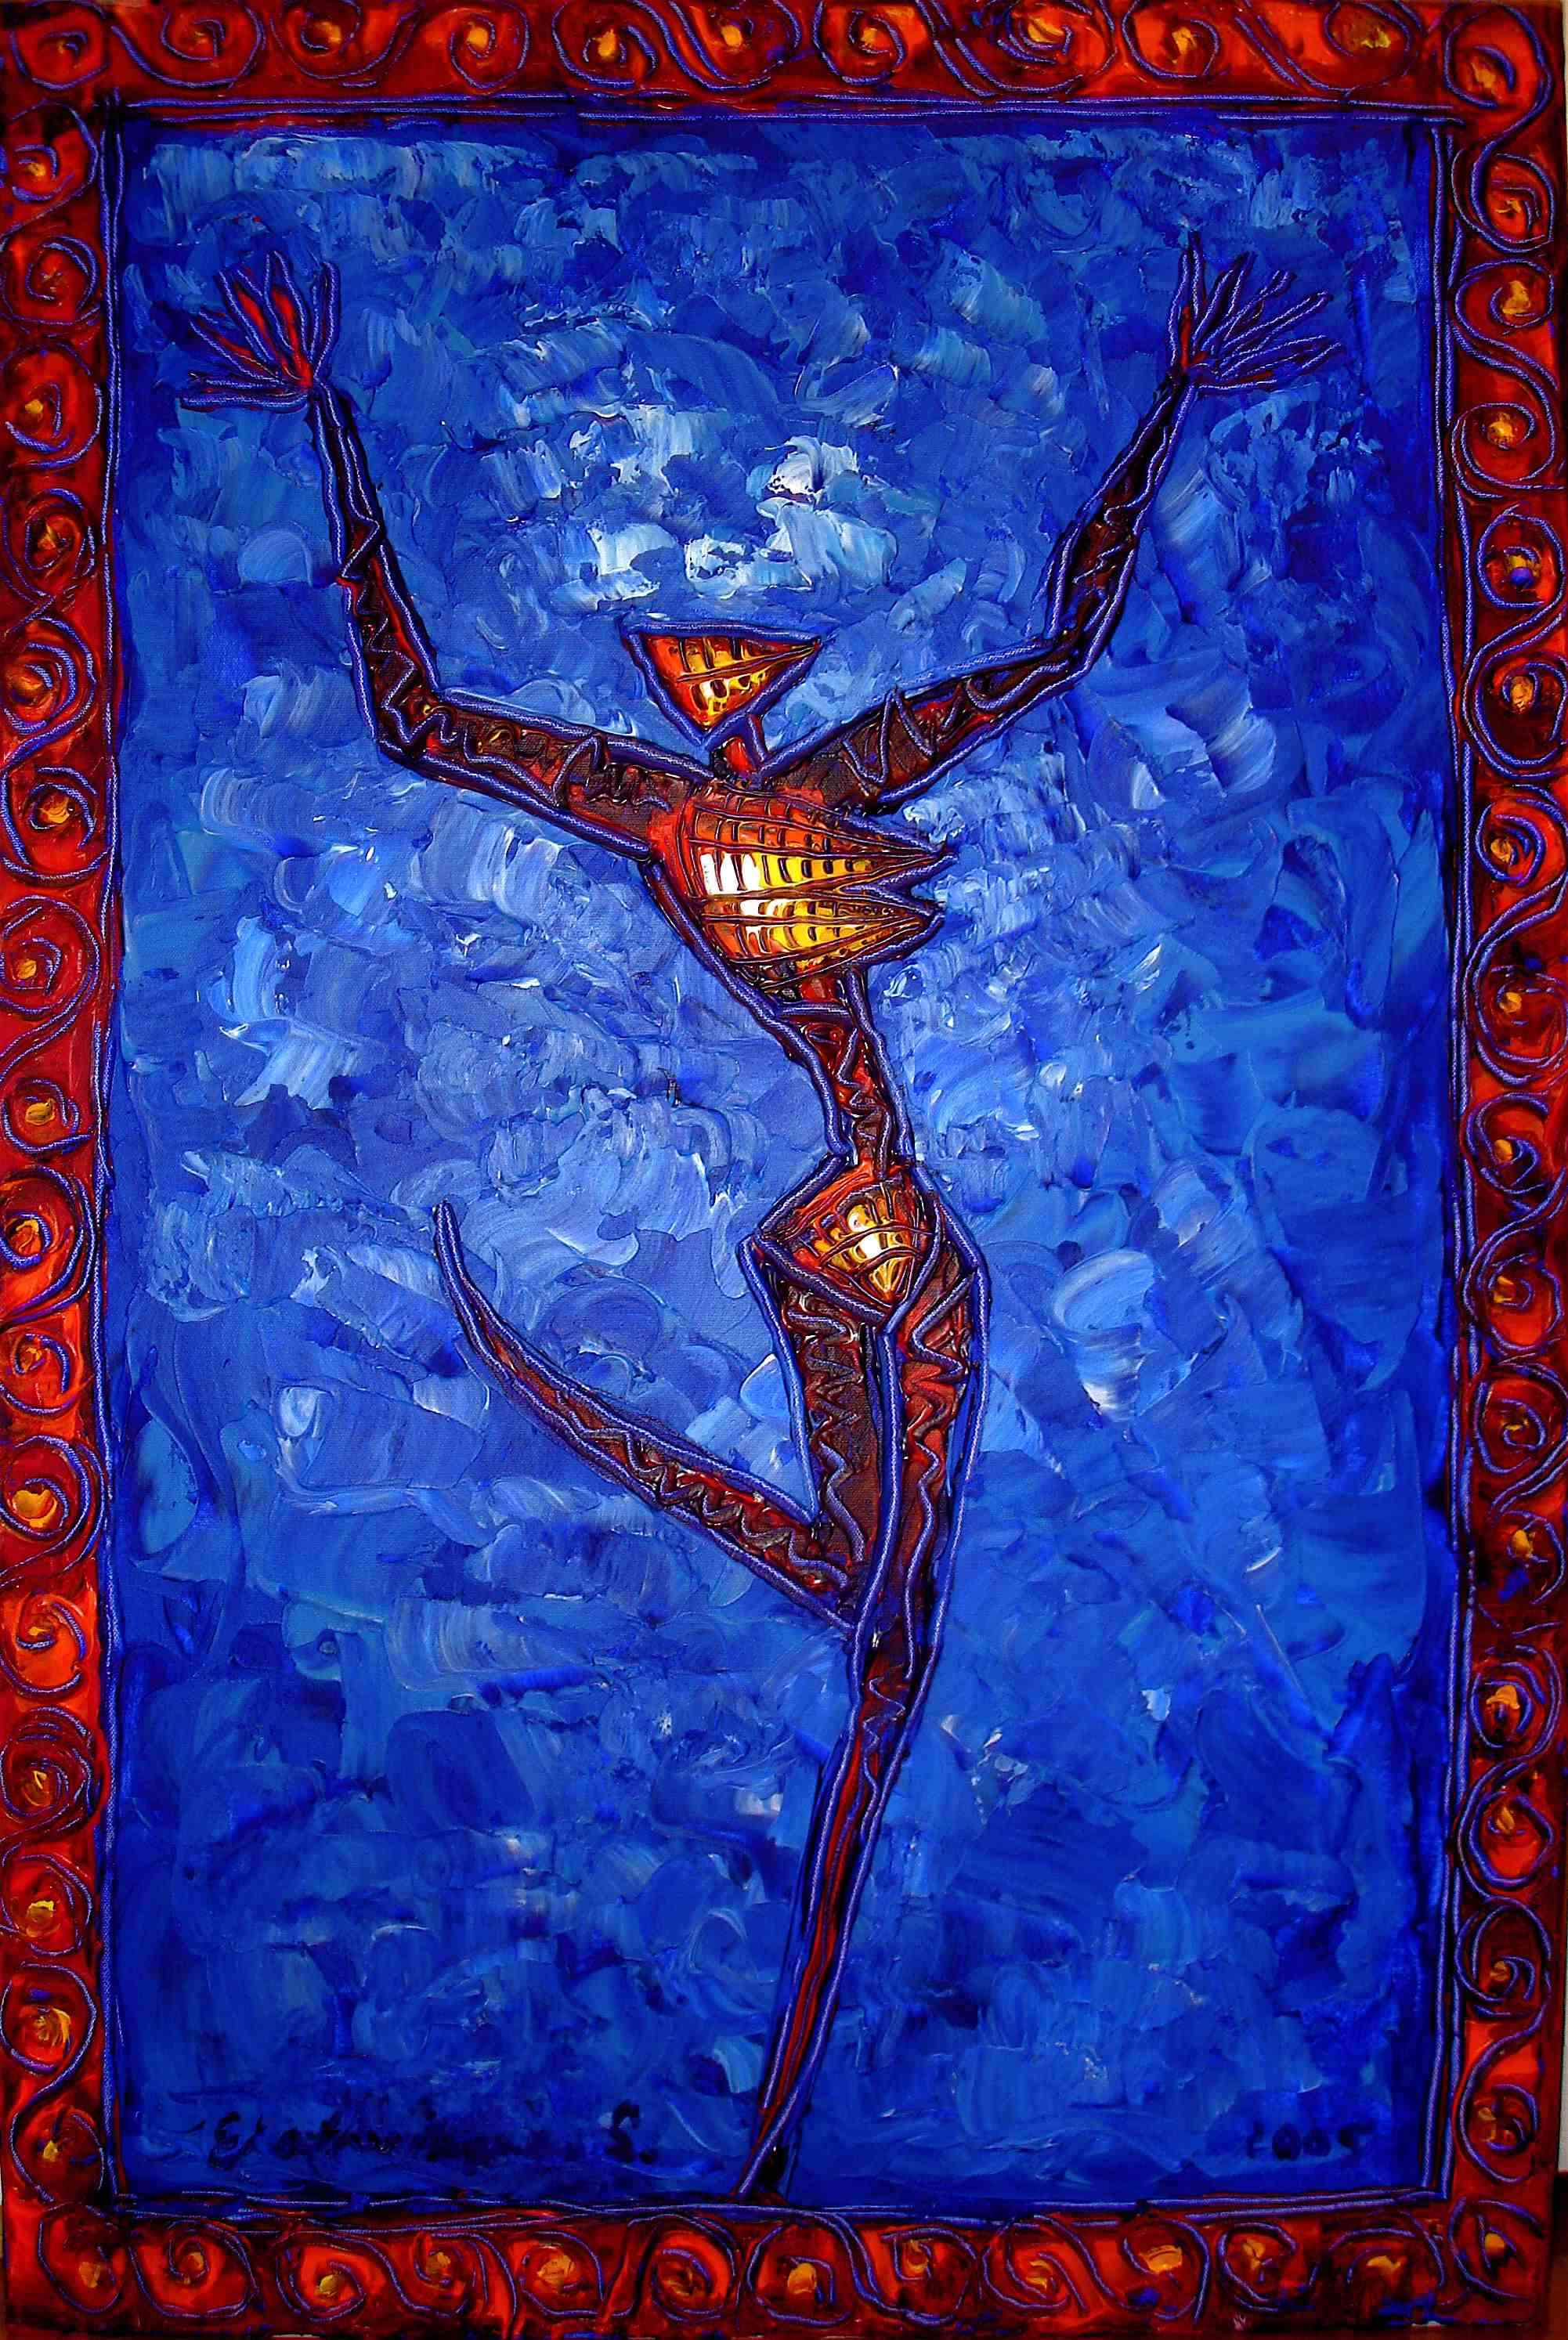 Ekatherina Aphrodite, 36_x24_,acrylic on canvas.jpg